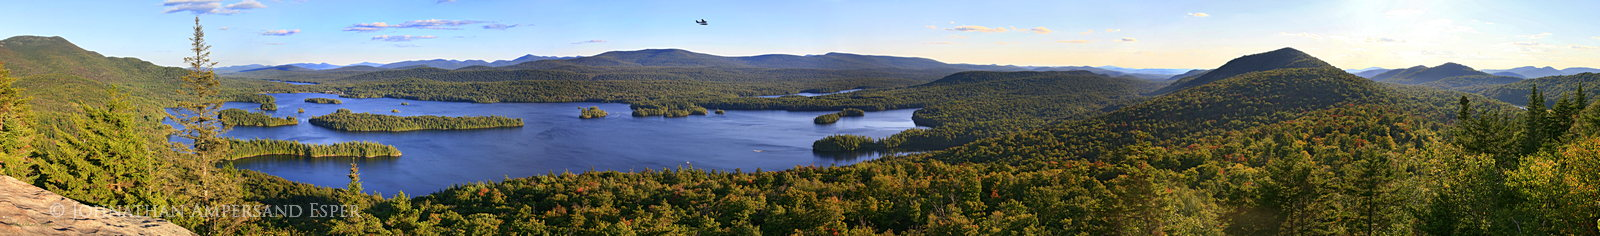 Blue Mountain Lake,Castle Rock,Blue Mountain,floatplane,summer,panorama,Blue Mt Lake,Blue Mountain Lake Castle Rock Floa, photo